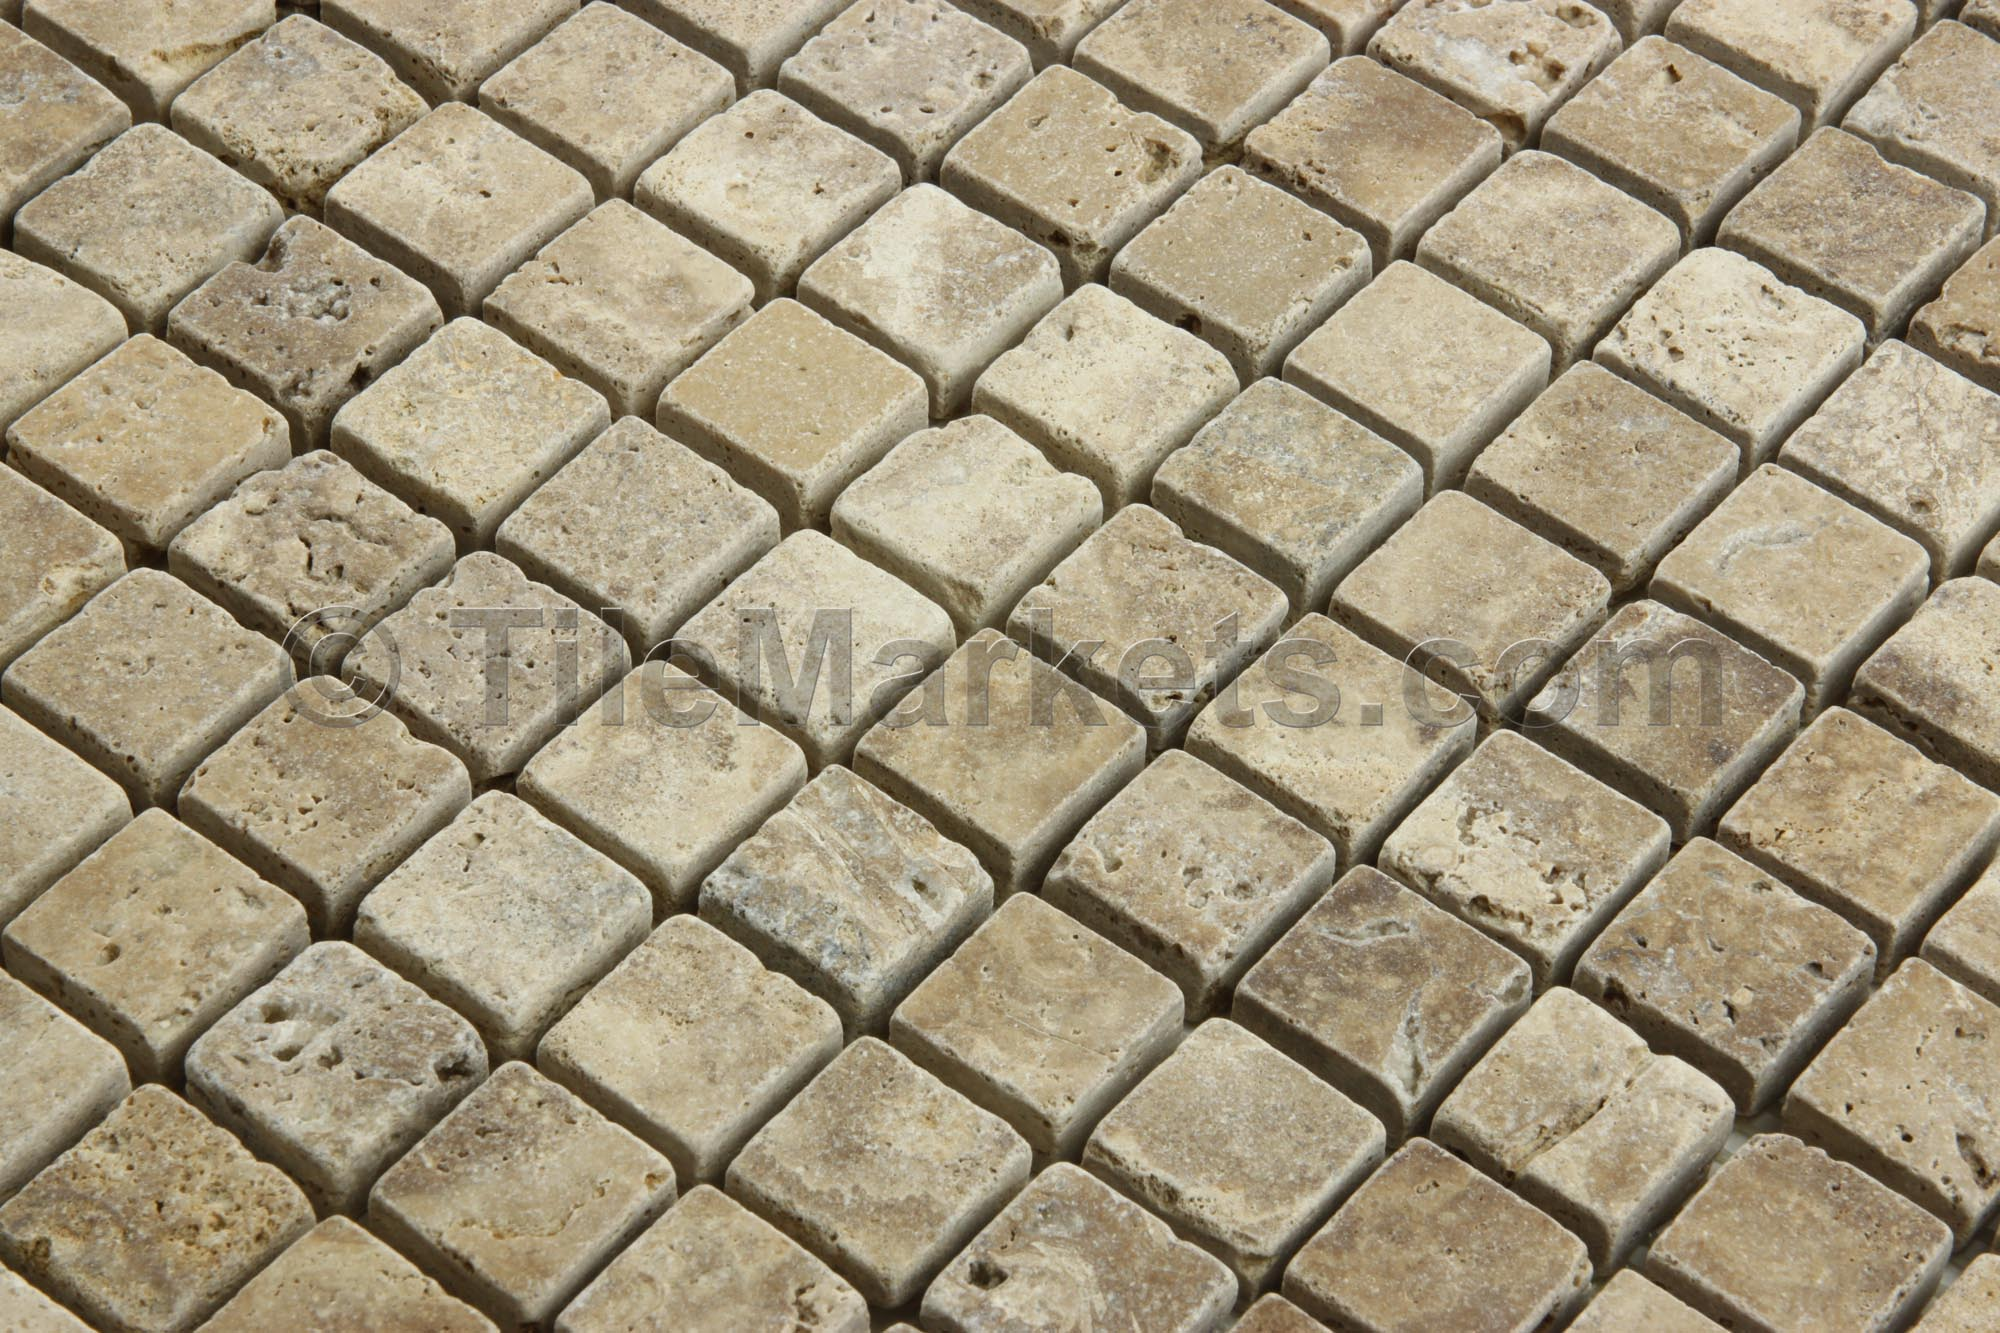 Travertine Mosaic Noce 1x1 Tumbled Tilemarkets 174